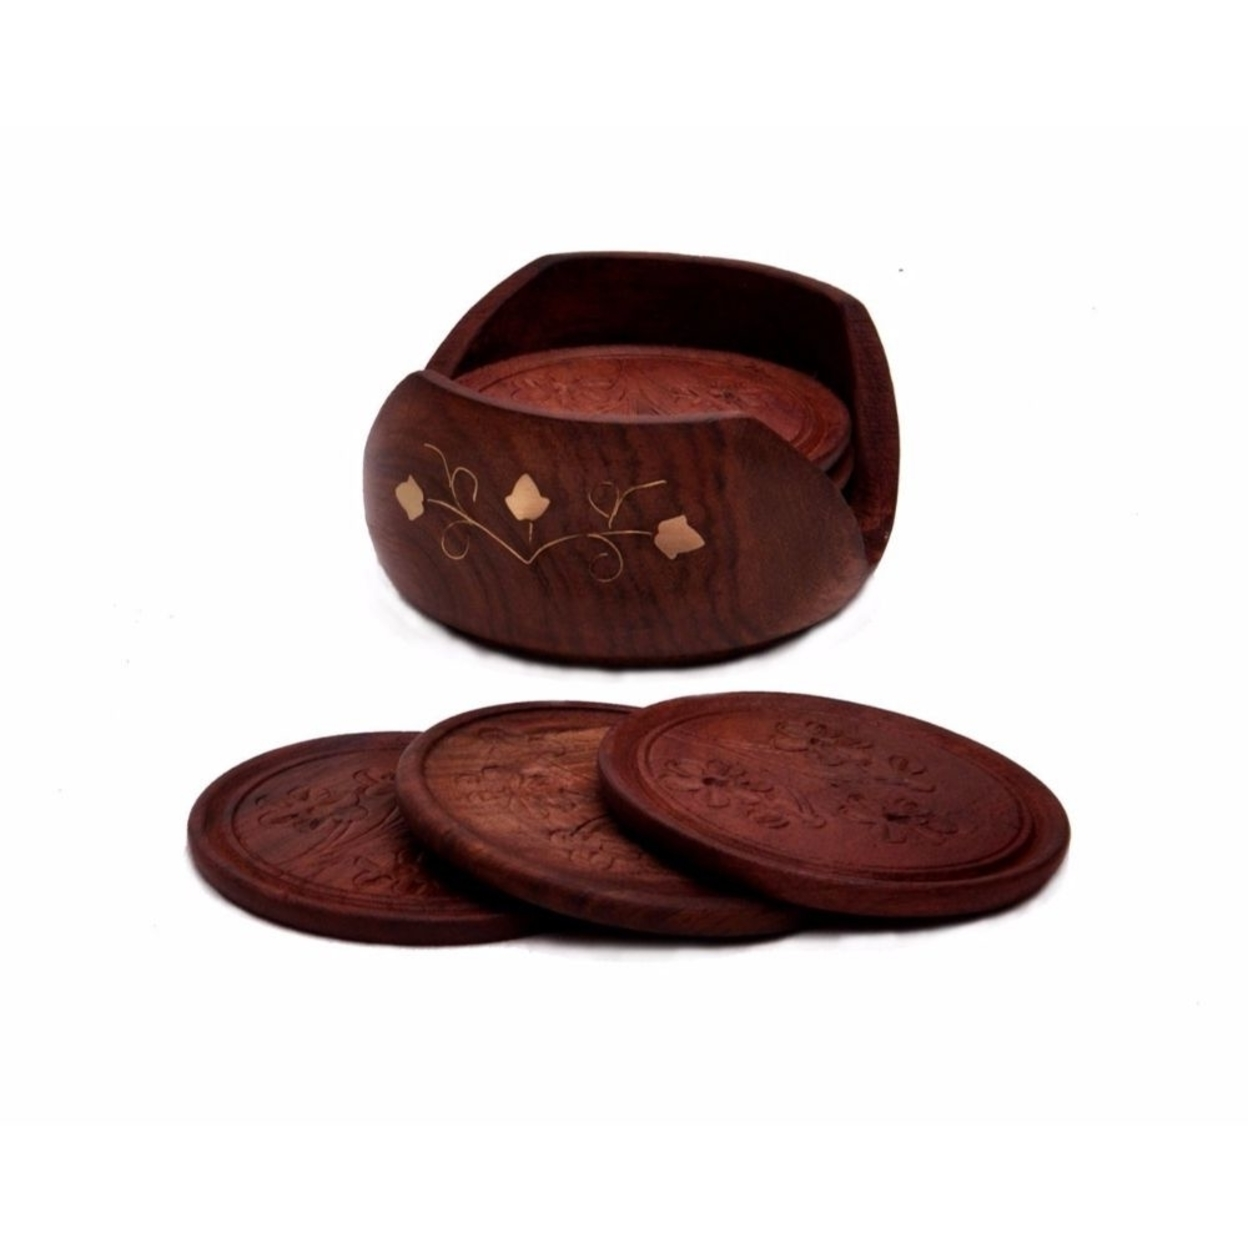 Drink Coasters - SouvNear Rosewood Retro Wood Coaster, Set Of 6 59d009ac2a00e46ddd0a3729